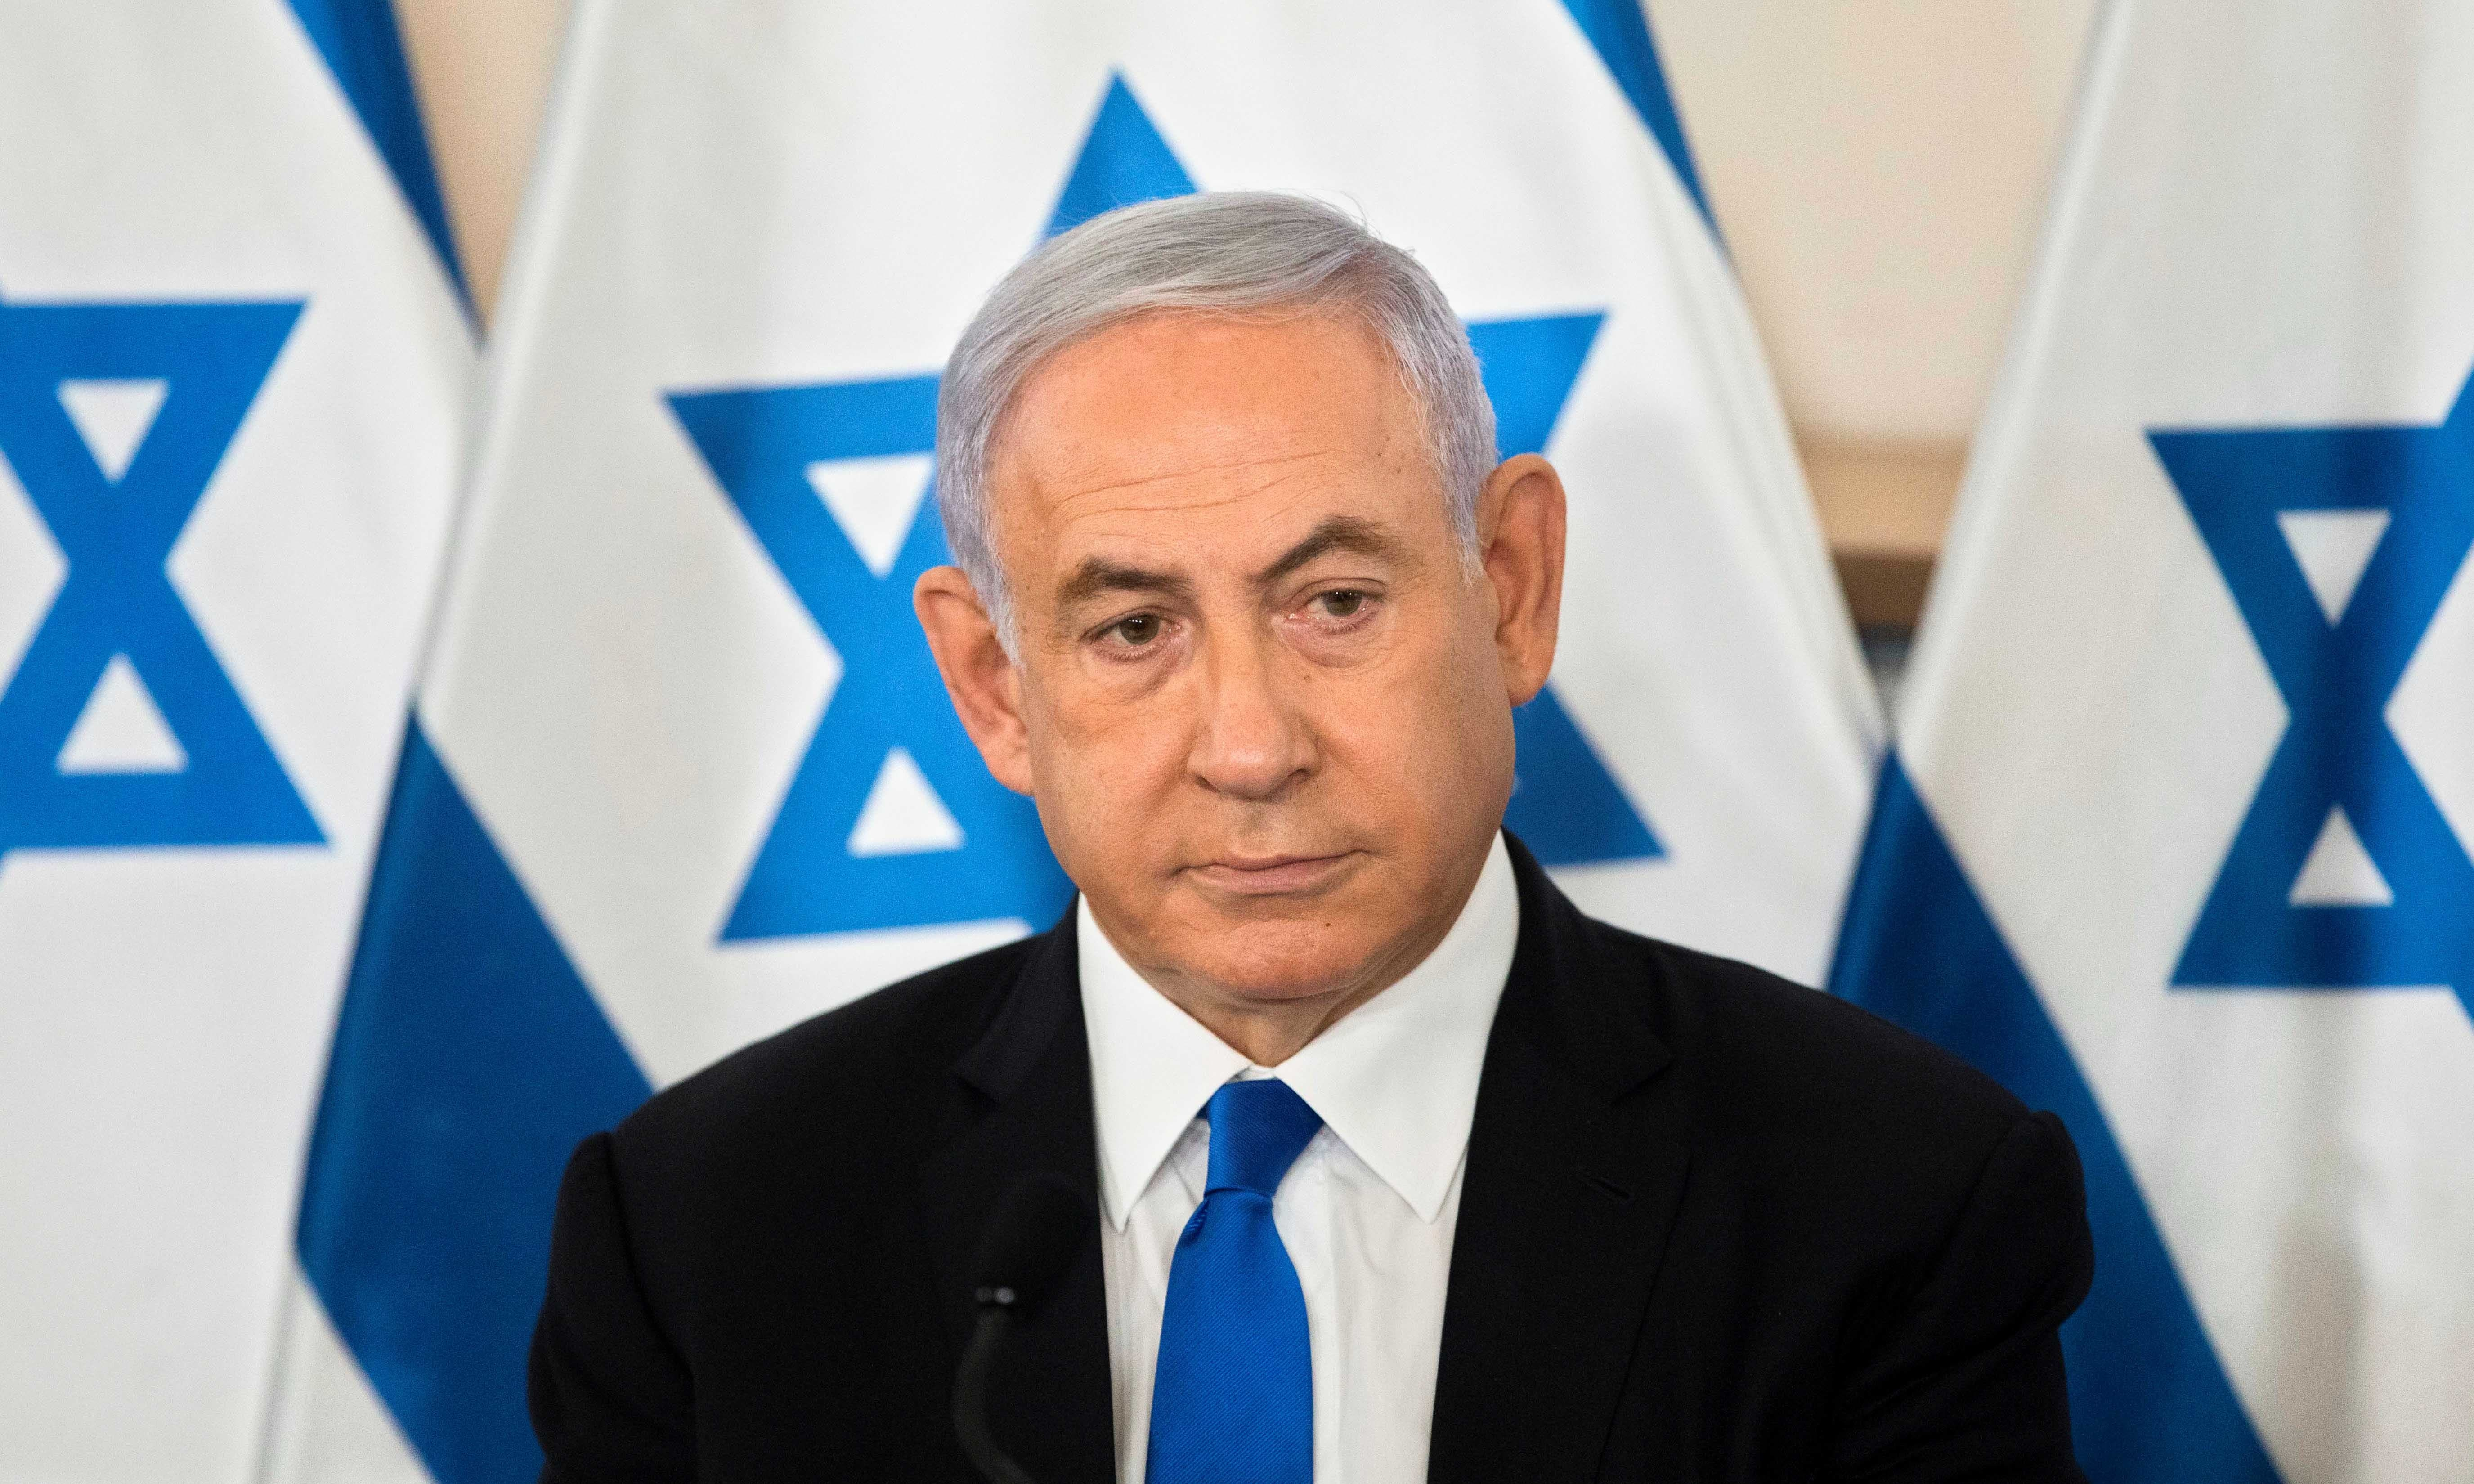 Israeli Prime Minister Benjamin Netanyahu looks on during a briefing to ambassadors to Israel at a military base in Tel Aviv on May 19. — Reuters